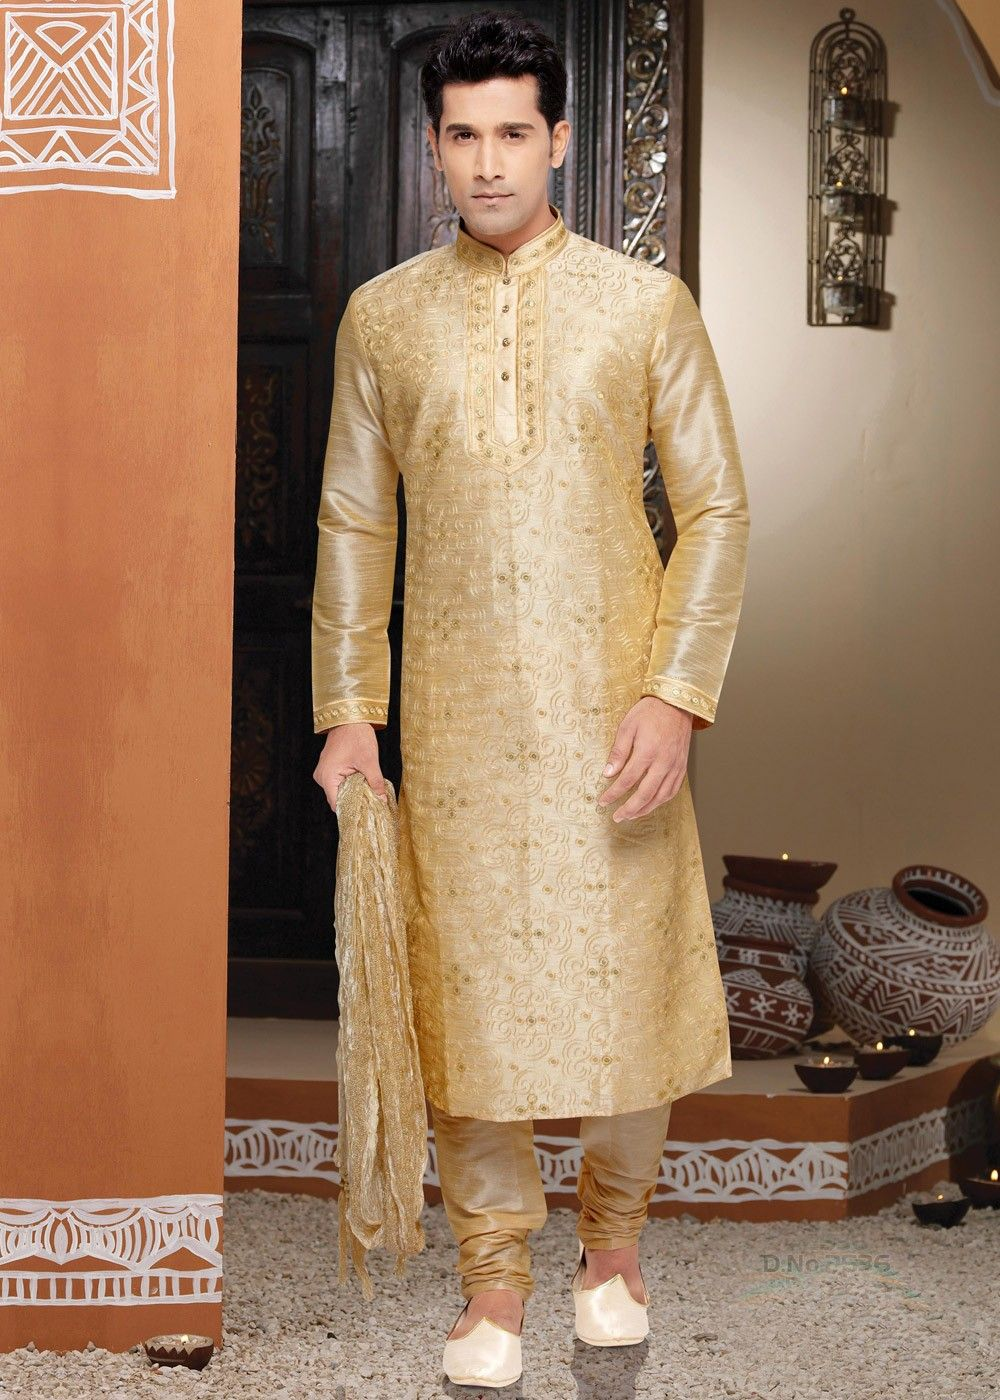 ebb3bd5c17 Readymade #golden #kurta in #dupion #silk with full length sleeves and  #mandarin collared #yoke enhanced by all over #embroidery.